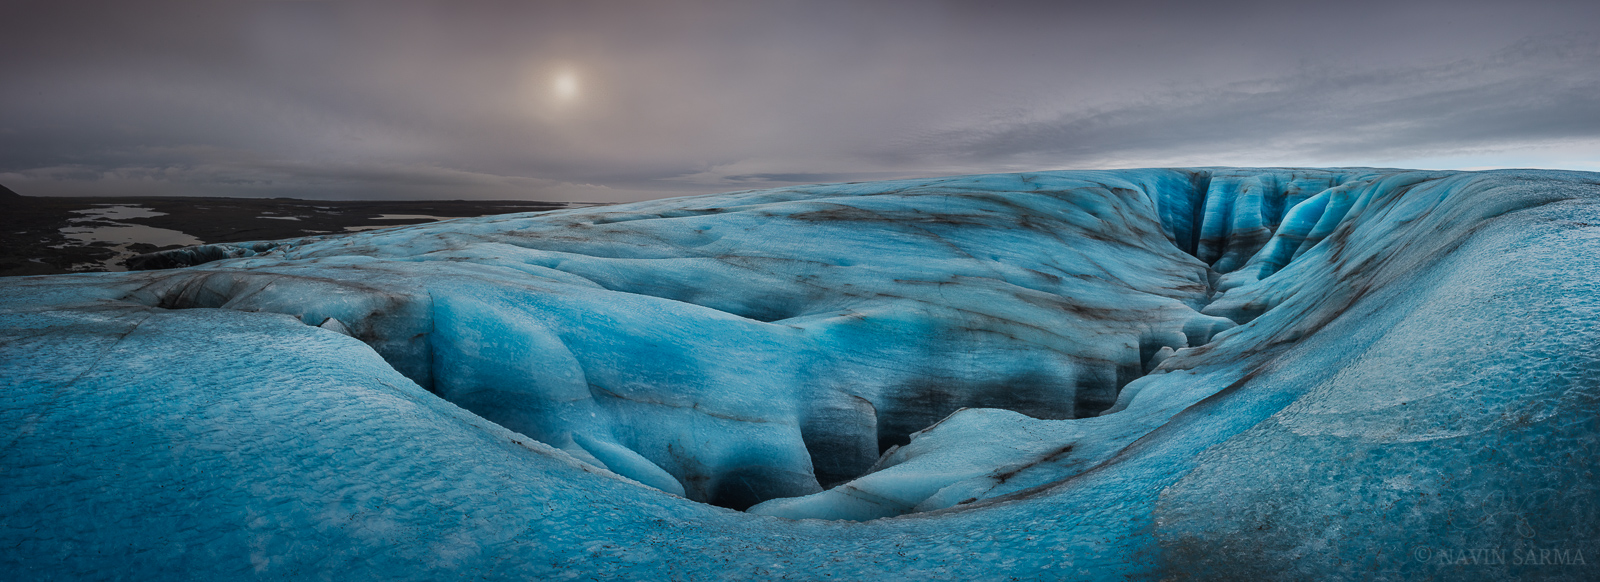 What Lies Beneath - A massive crevasse canyon created by meltwater on top of the Vatnajökull glacier